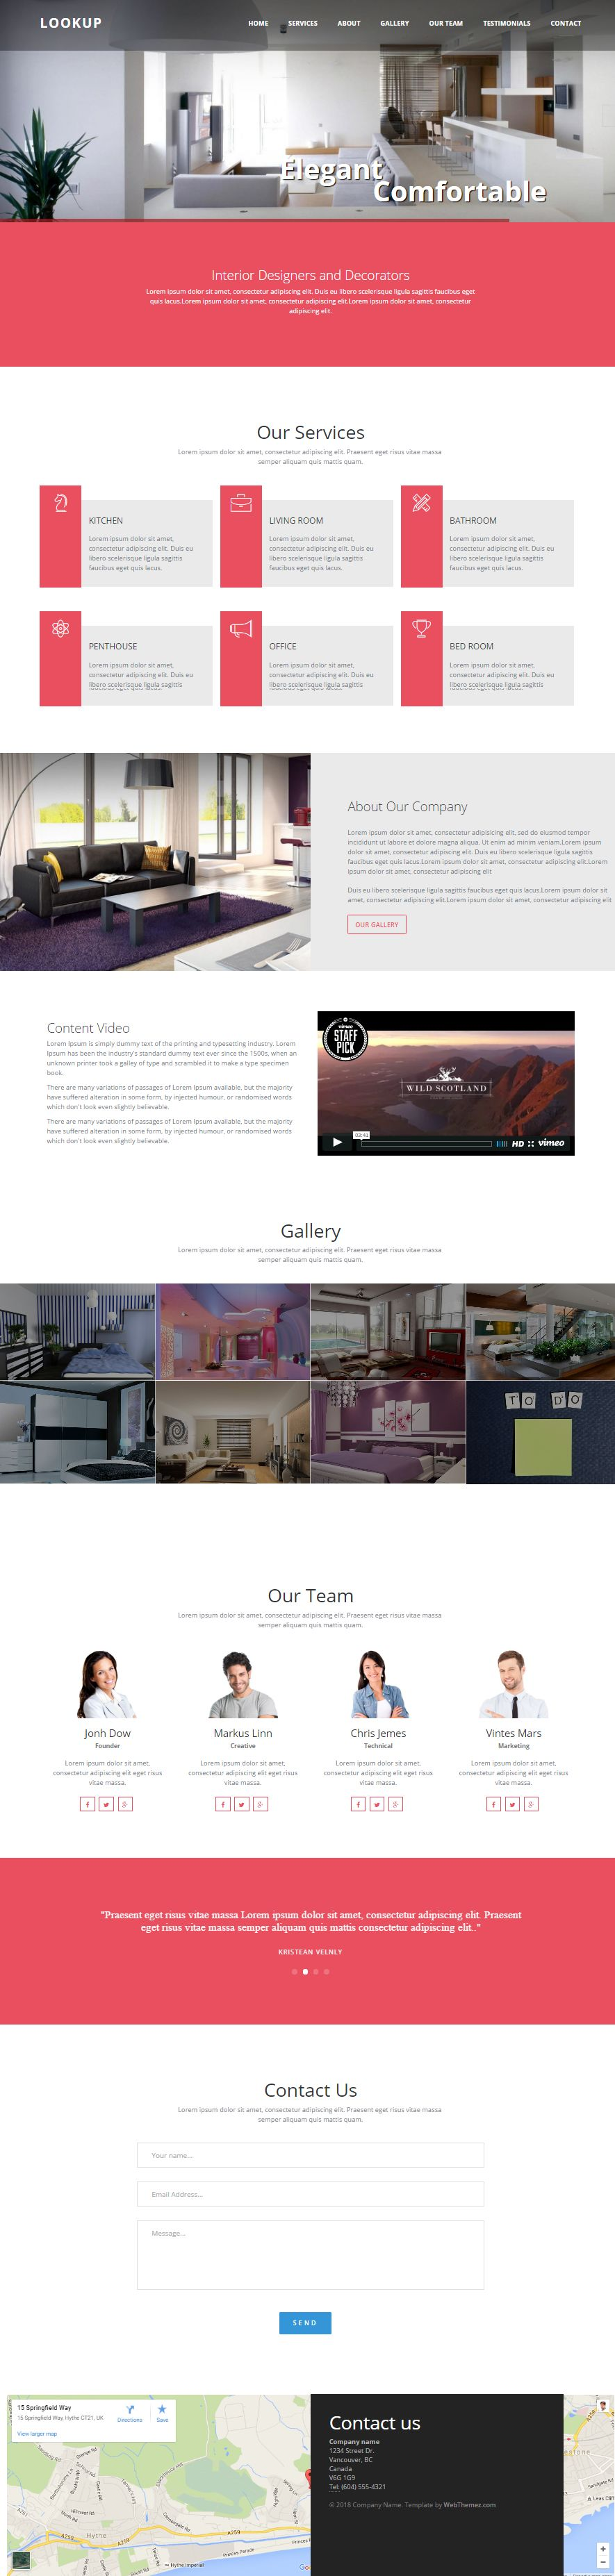 LookUp - Interior Design Bootstrap Template I WebThemez